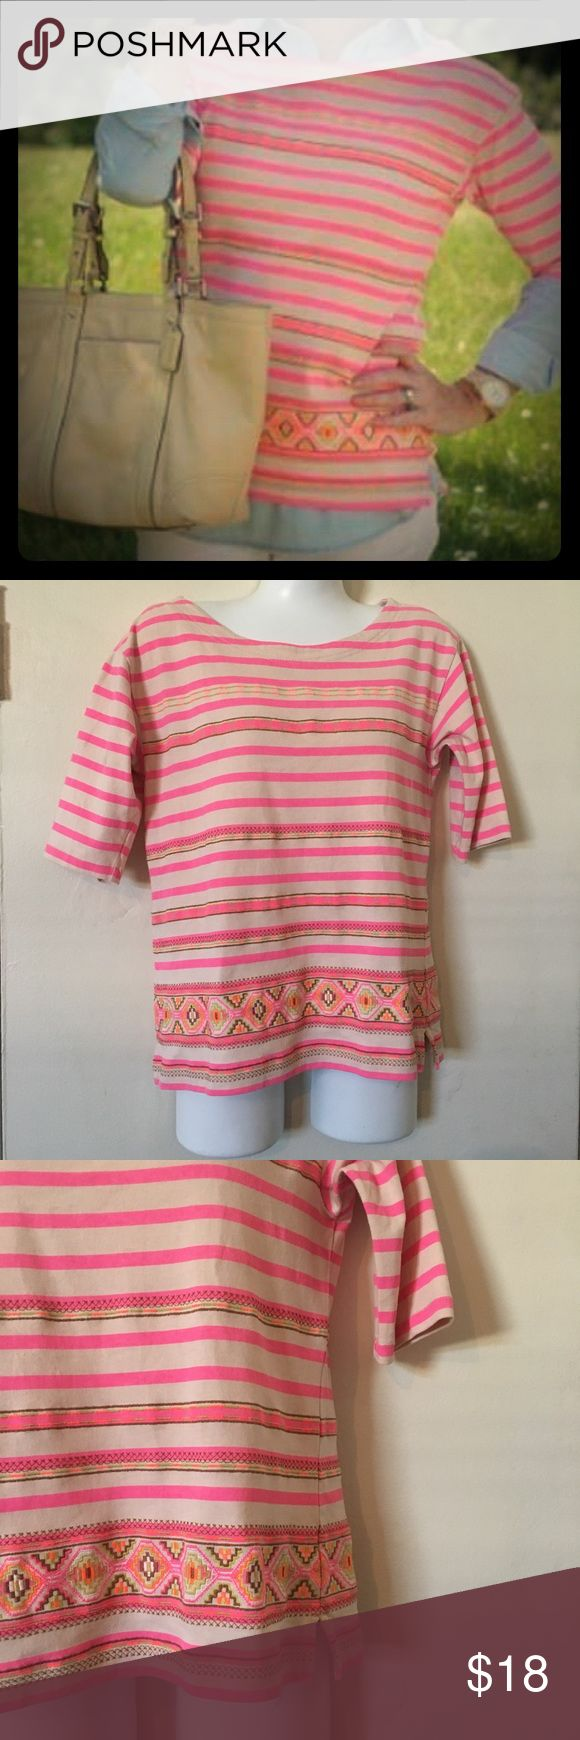 J Crew striped Neon Aztec tribal shirt size xs J Crew striped neon Aztec tribal southwest Navajo shirt. Size extra small J. Crew Tops